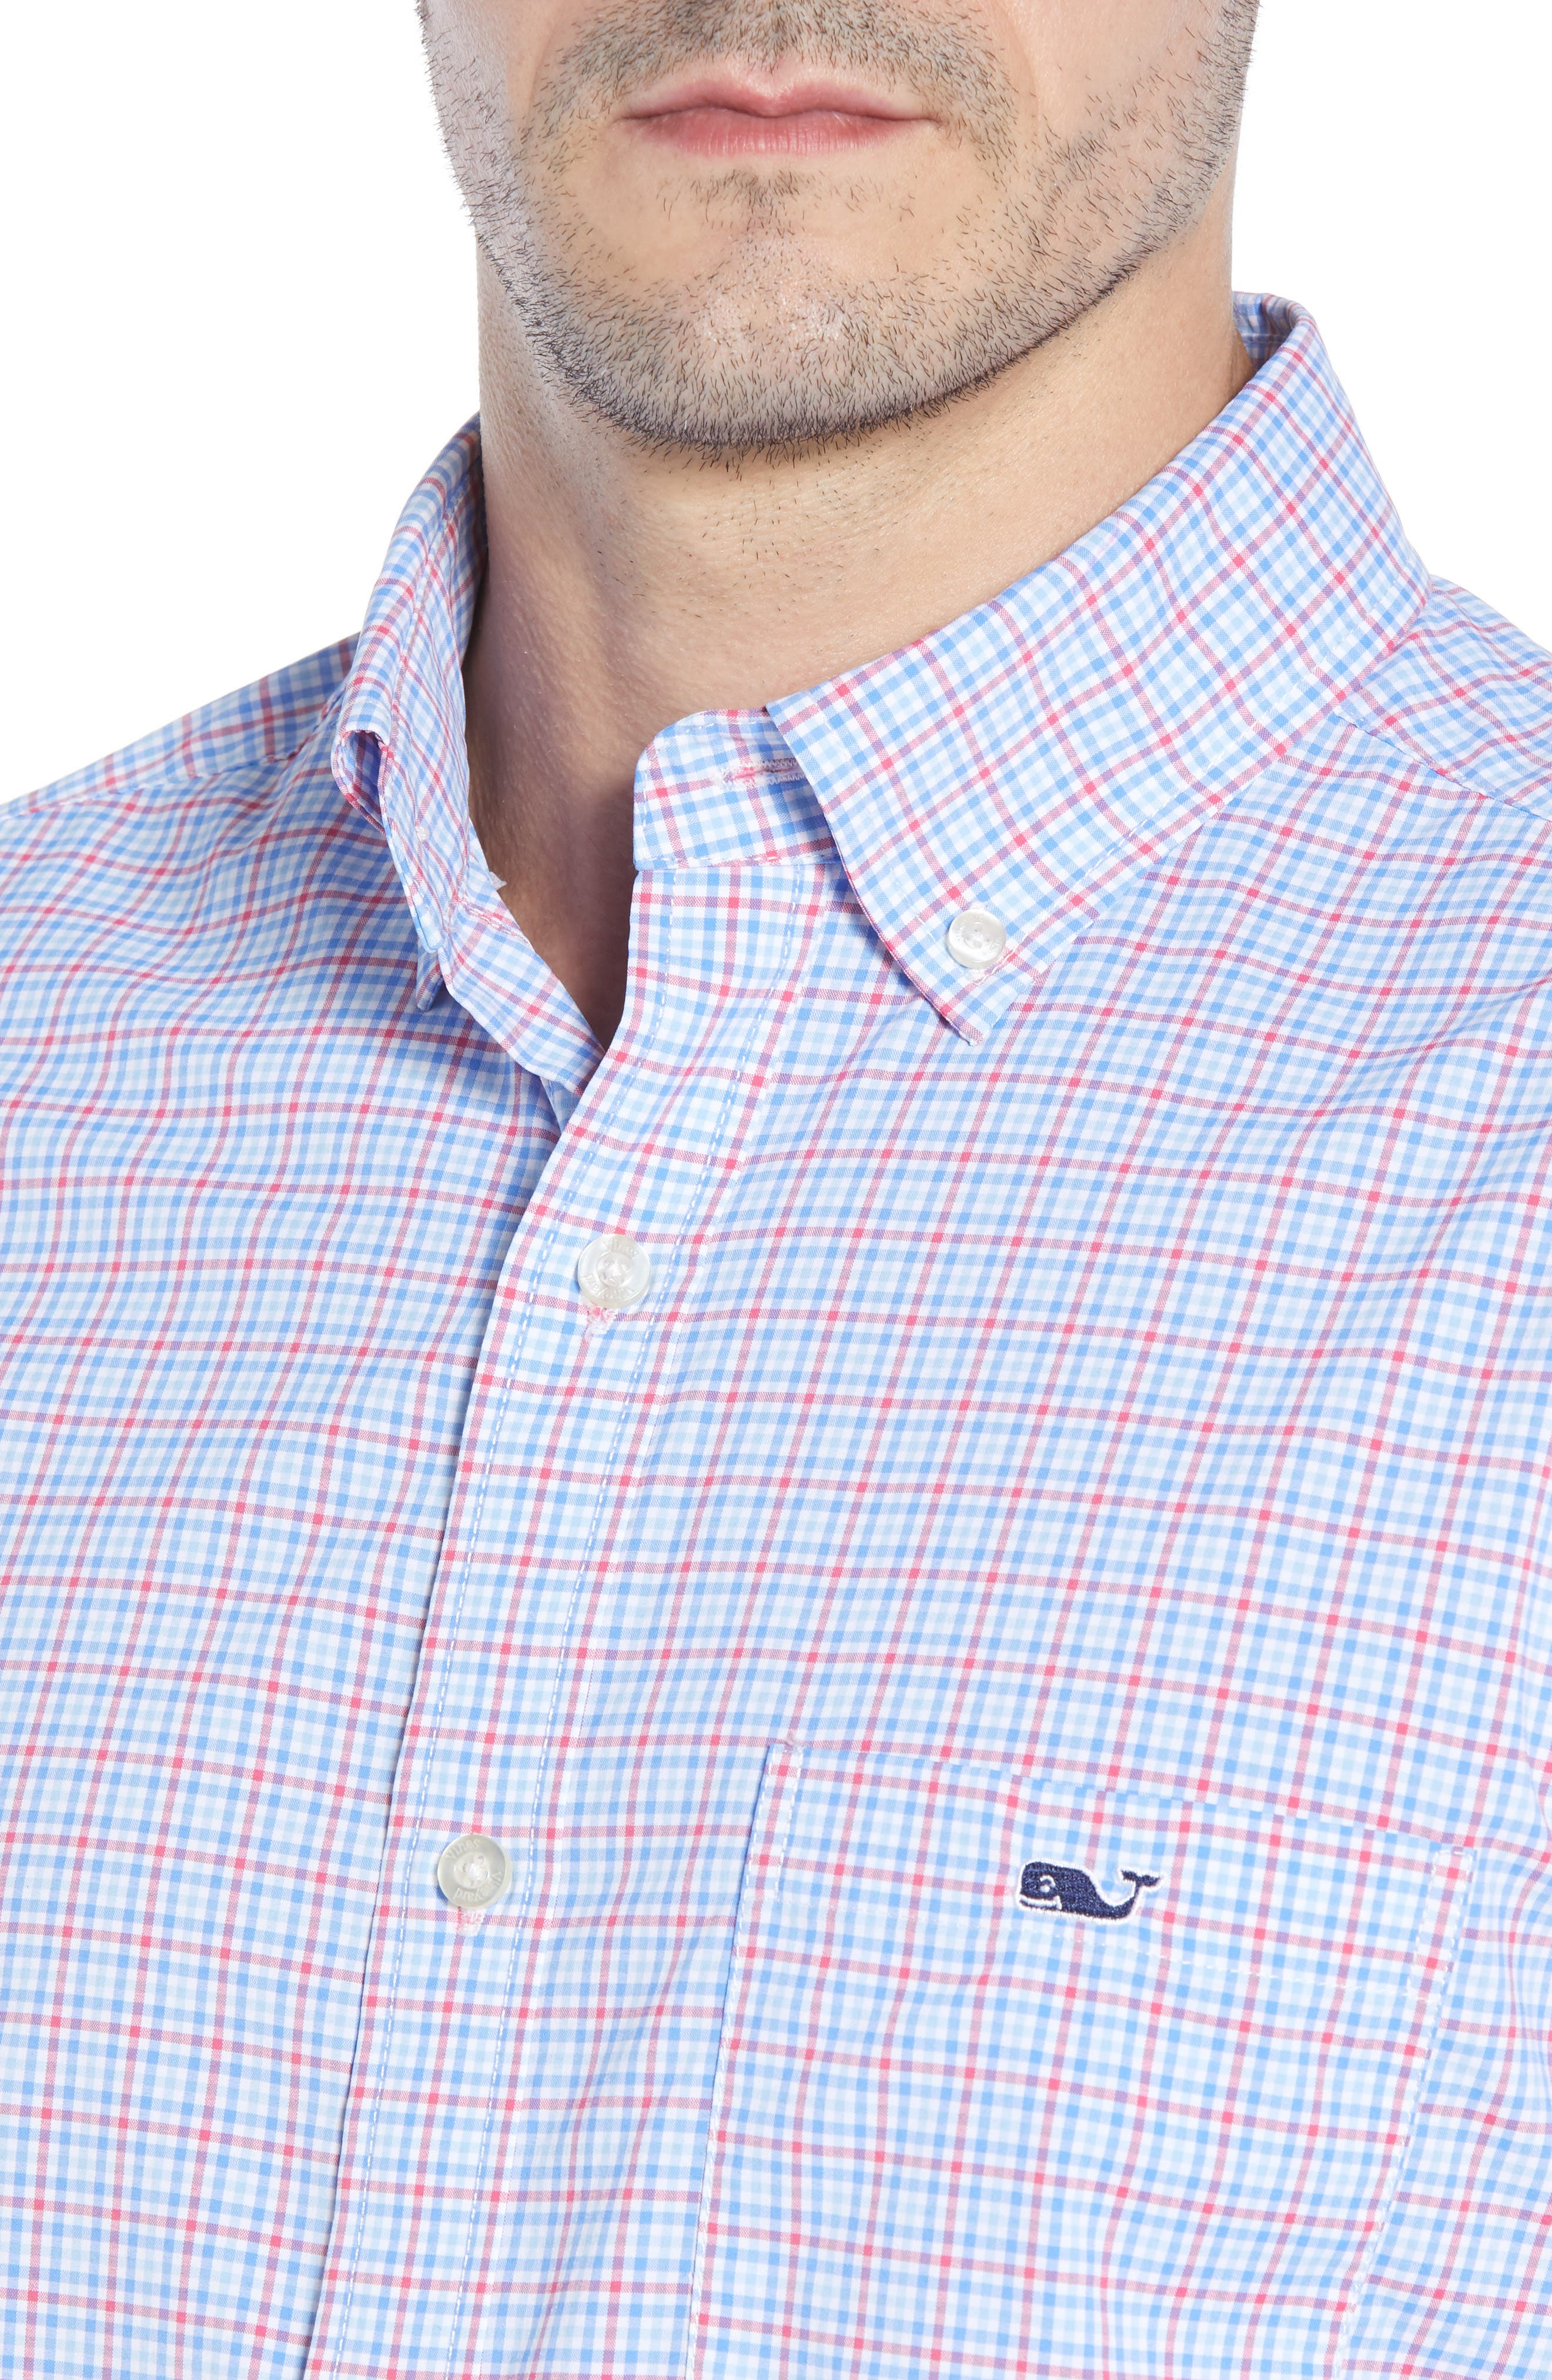 Boldwater Regular Fit Plaid Sport Shirt,                             Alternate thumbnail 2, color,                             SAILORS RED